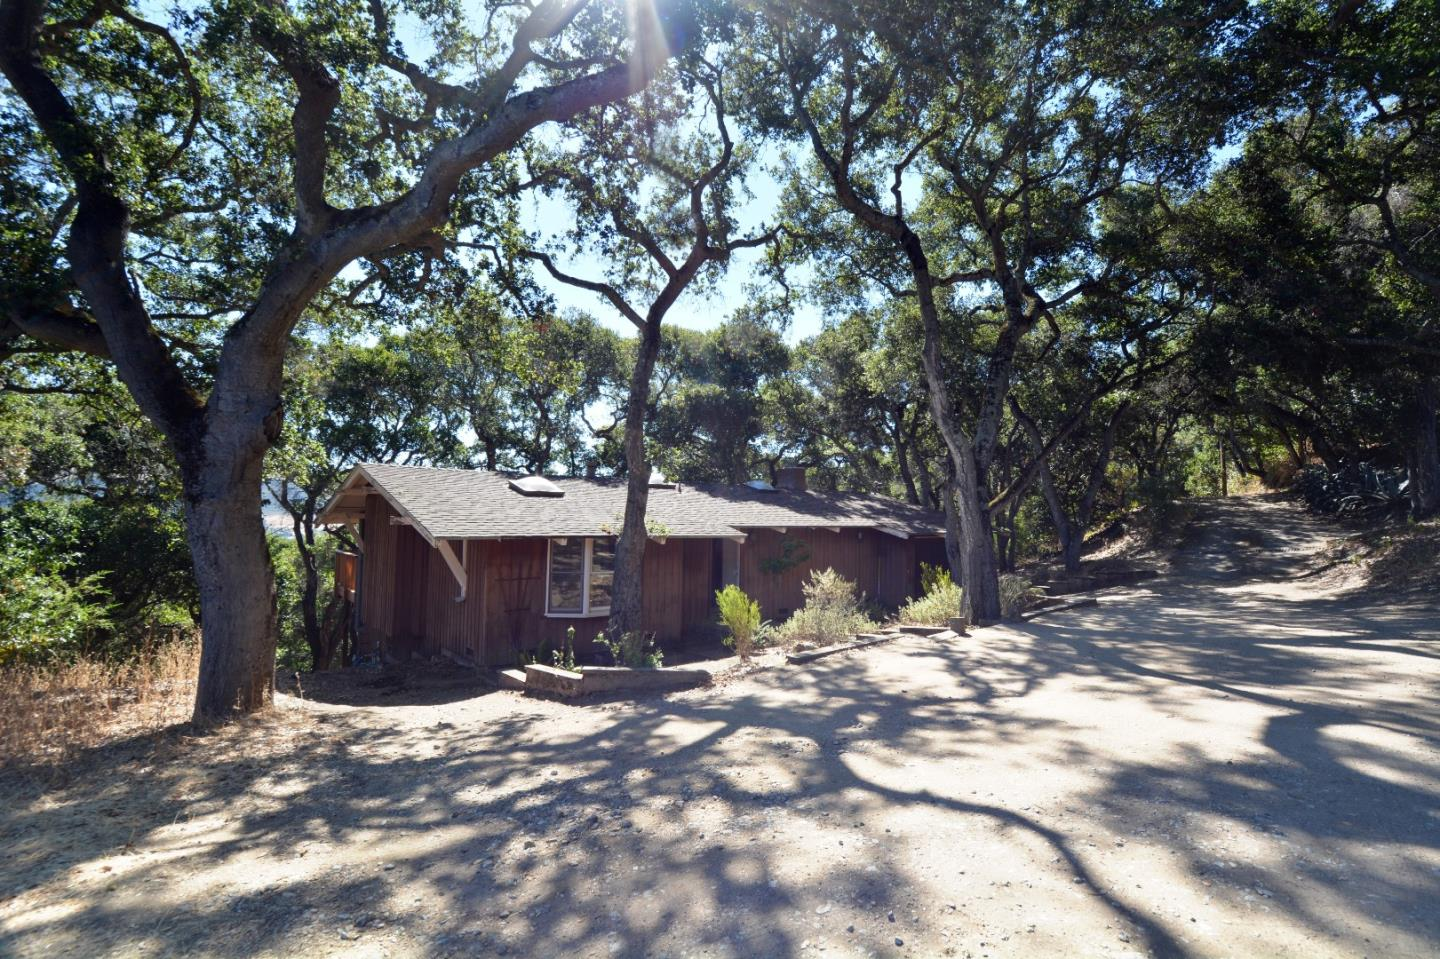 Single Family Home for Sale at 2 Cummings Drive Carmel Valley, California 93924 United States